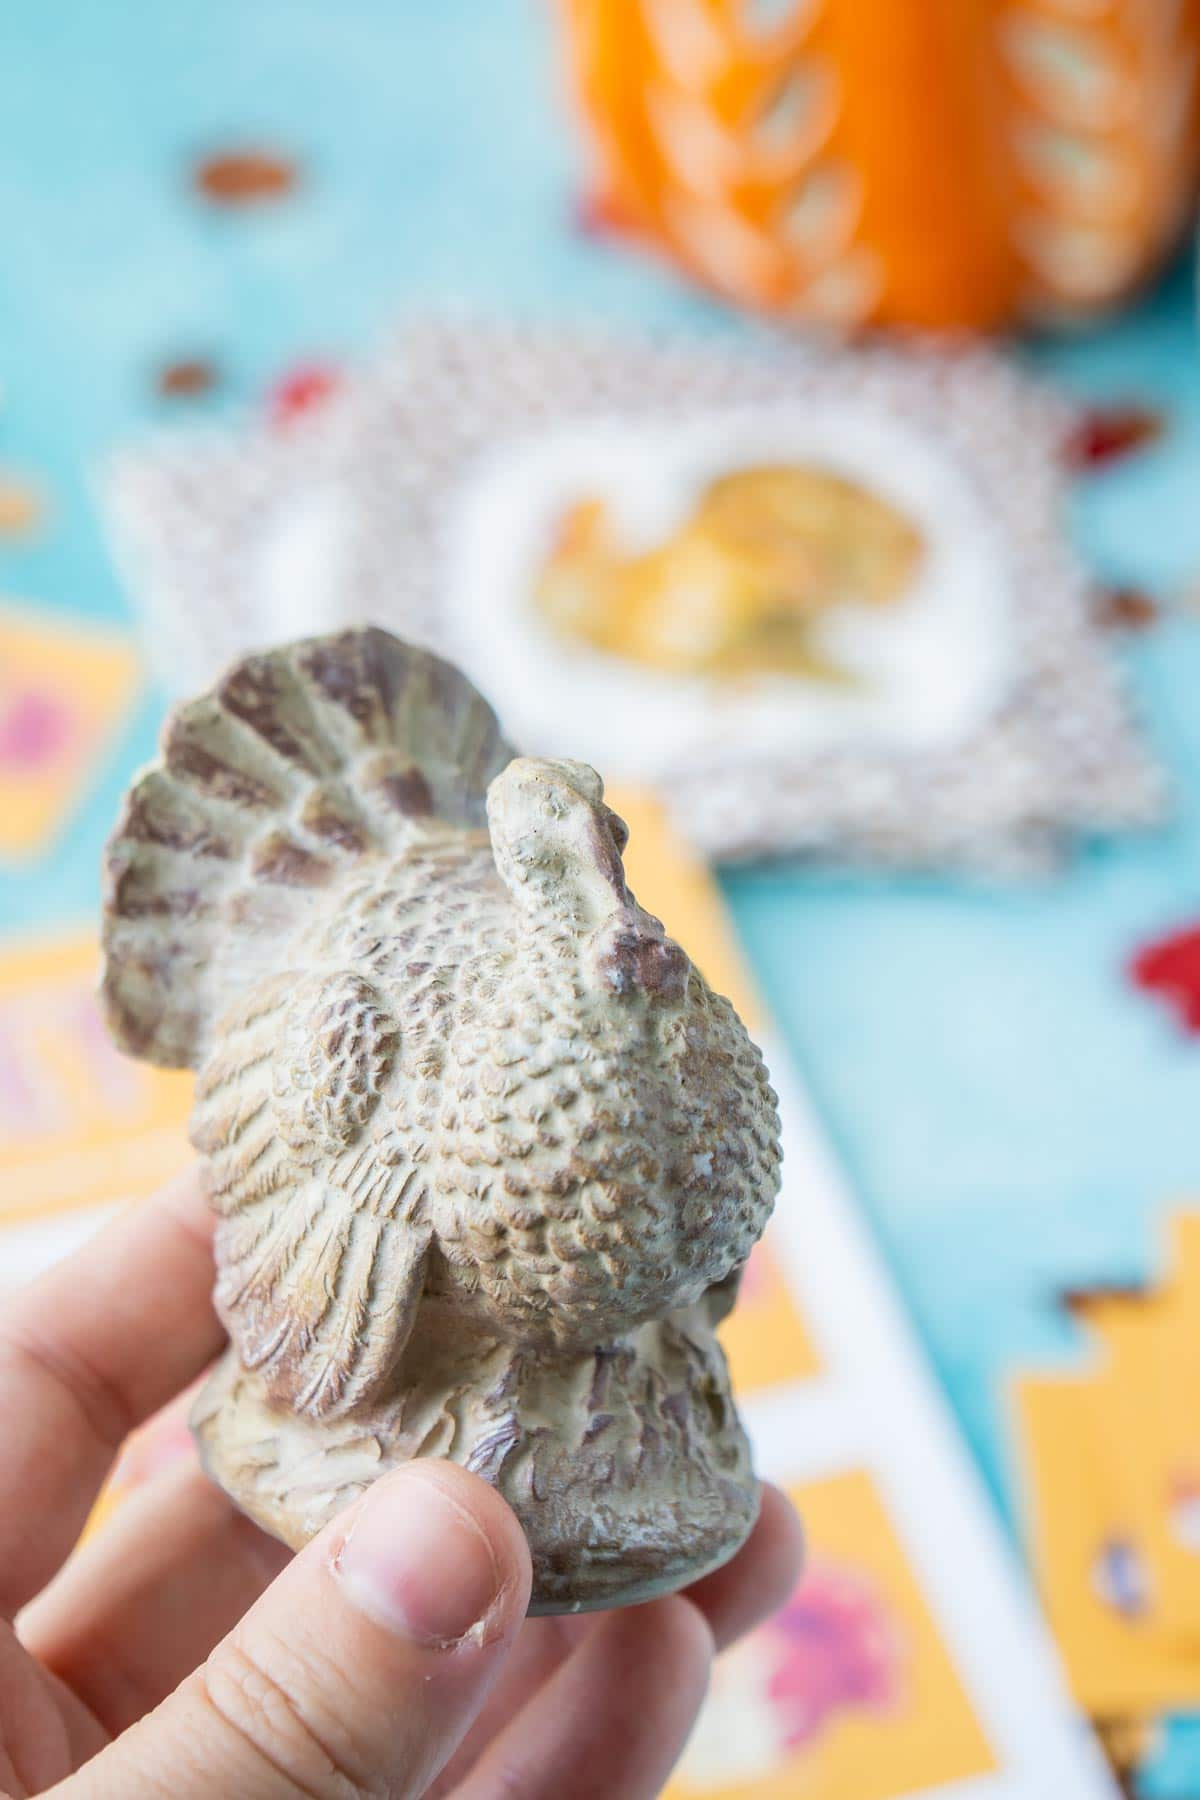 Ceramic turkey being held in a woman's hand